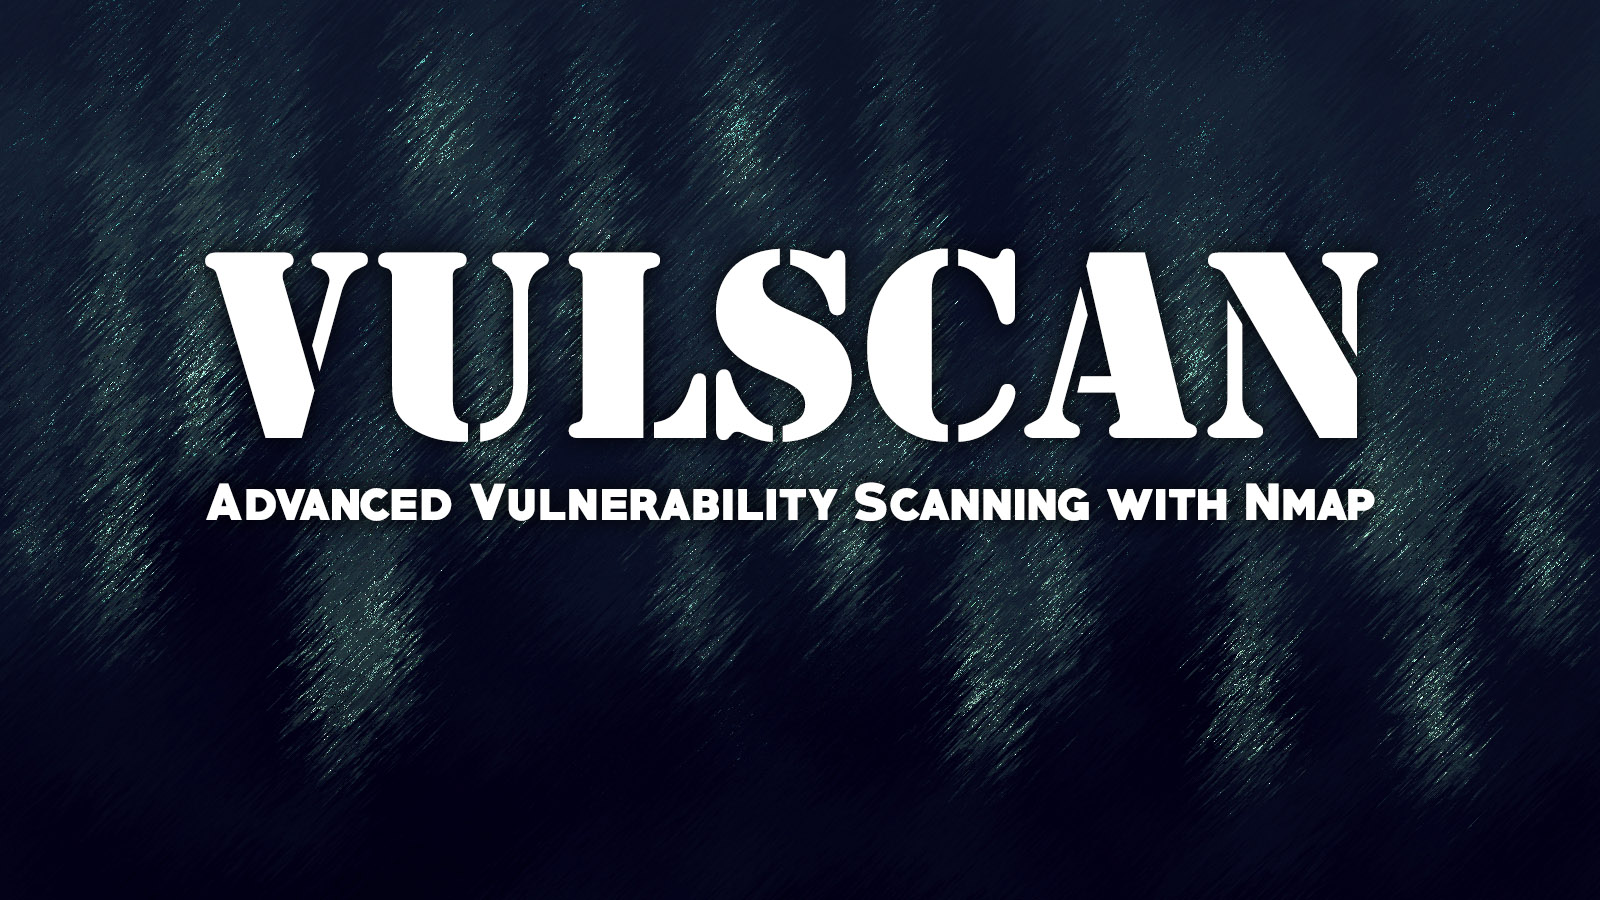 Vulscan - Advanced Vulnerability Scanning with Nmap